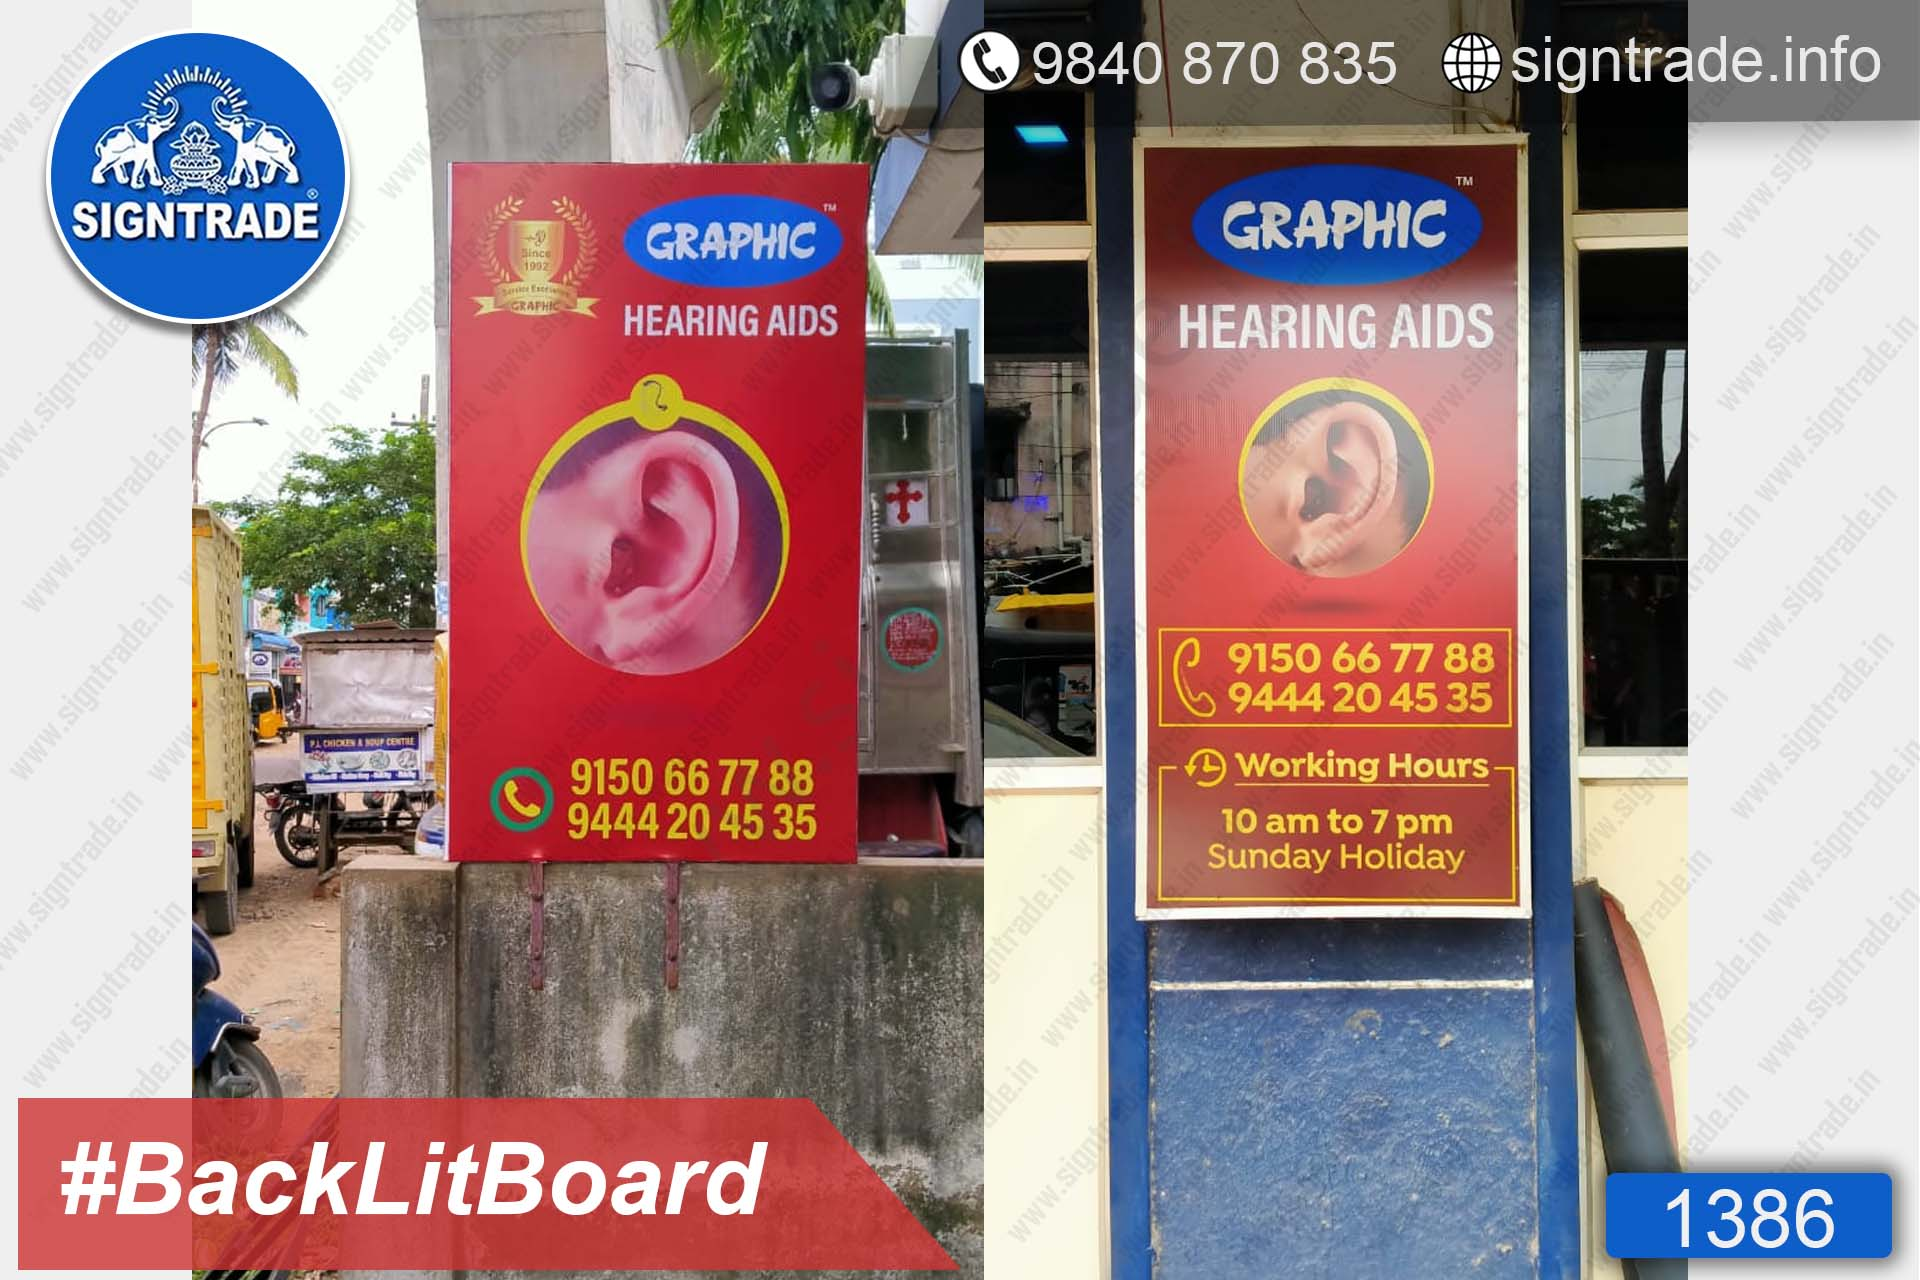 Graphic Hearing Aids, Nanganallur, Chennai - 1386, Flex Board, Backlit Flex Board, Star Backlit Flex Board, Backlit Flex Banners, Shop Front Flex Board, Shop Flex Board